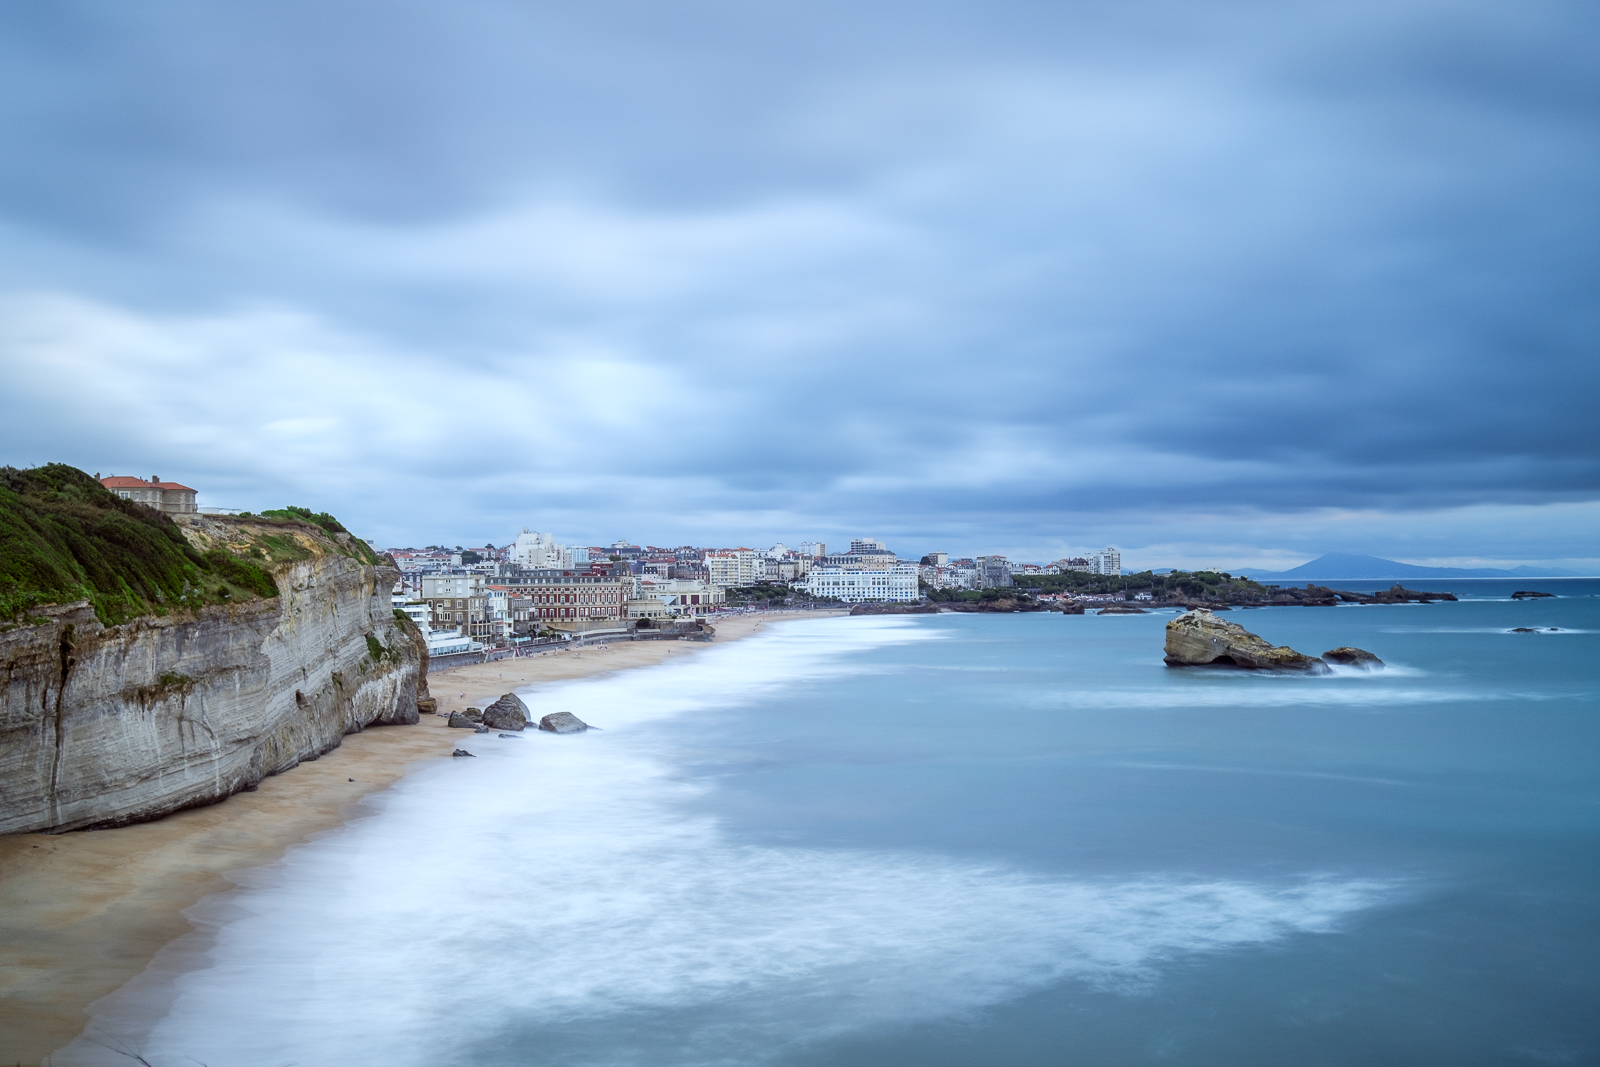 Magnificent Biarritz shot during a stormy sunset from my favourite spot up at the Lighthouse.